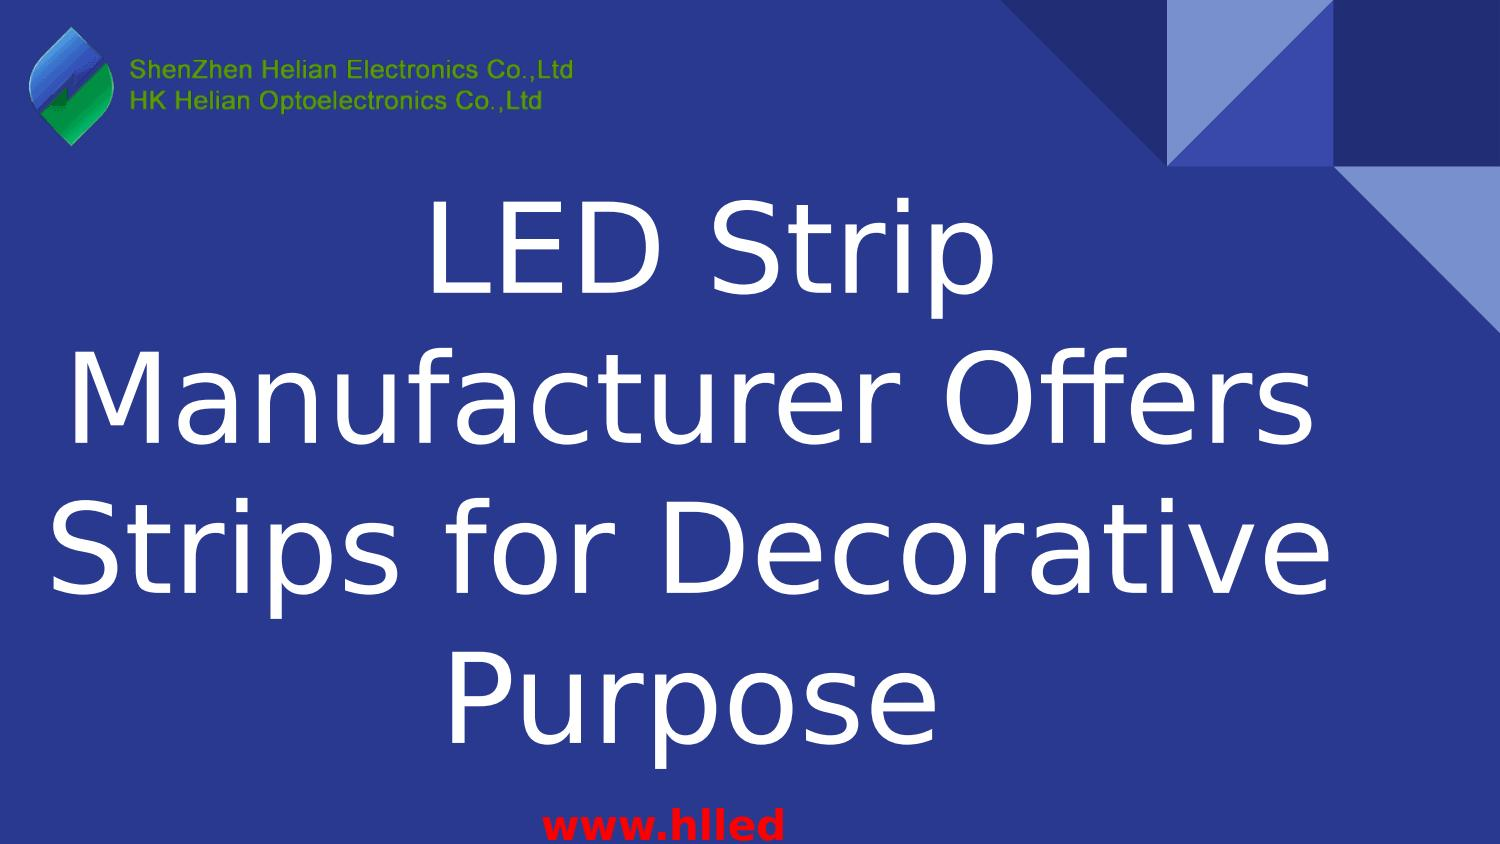 new arrival a20f8 09ade LED Strip Manufacturer Offers Strips for Decorative Purpose ...